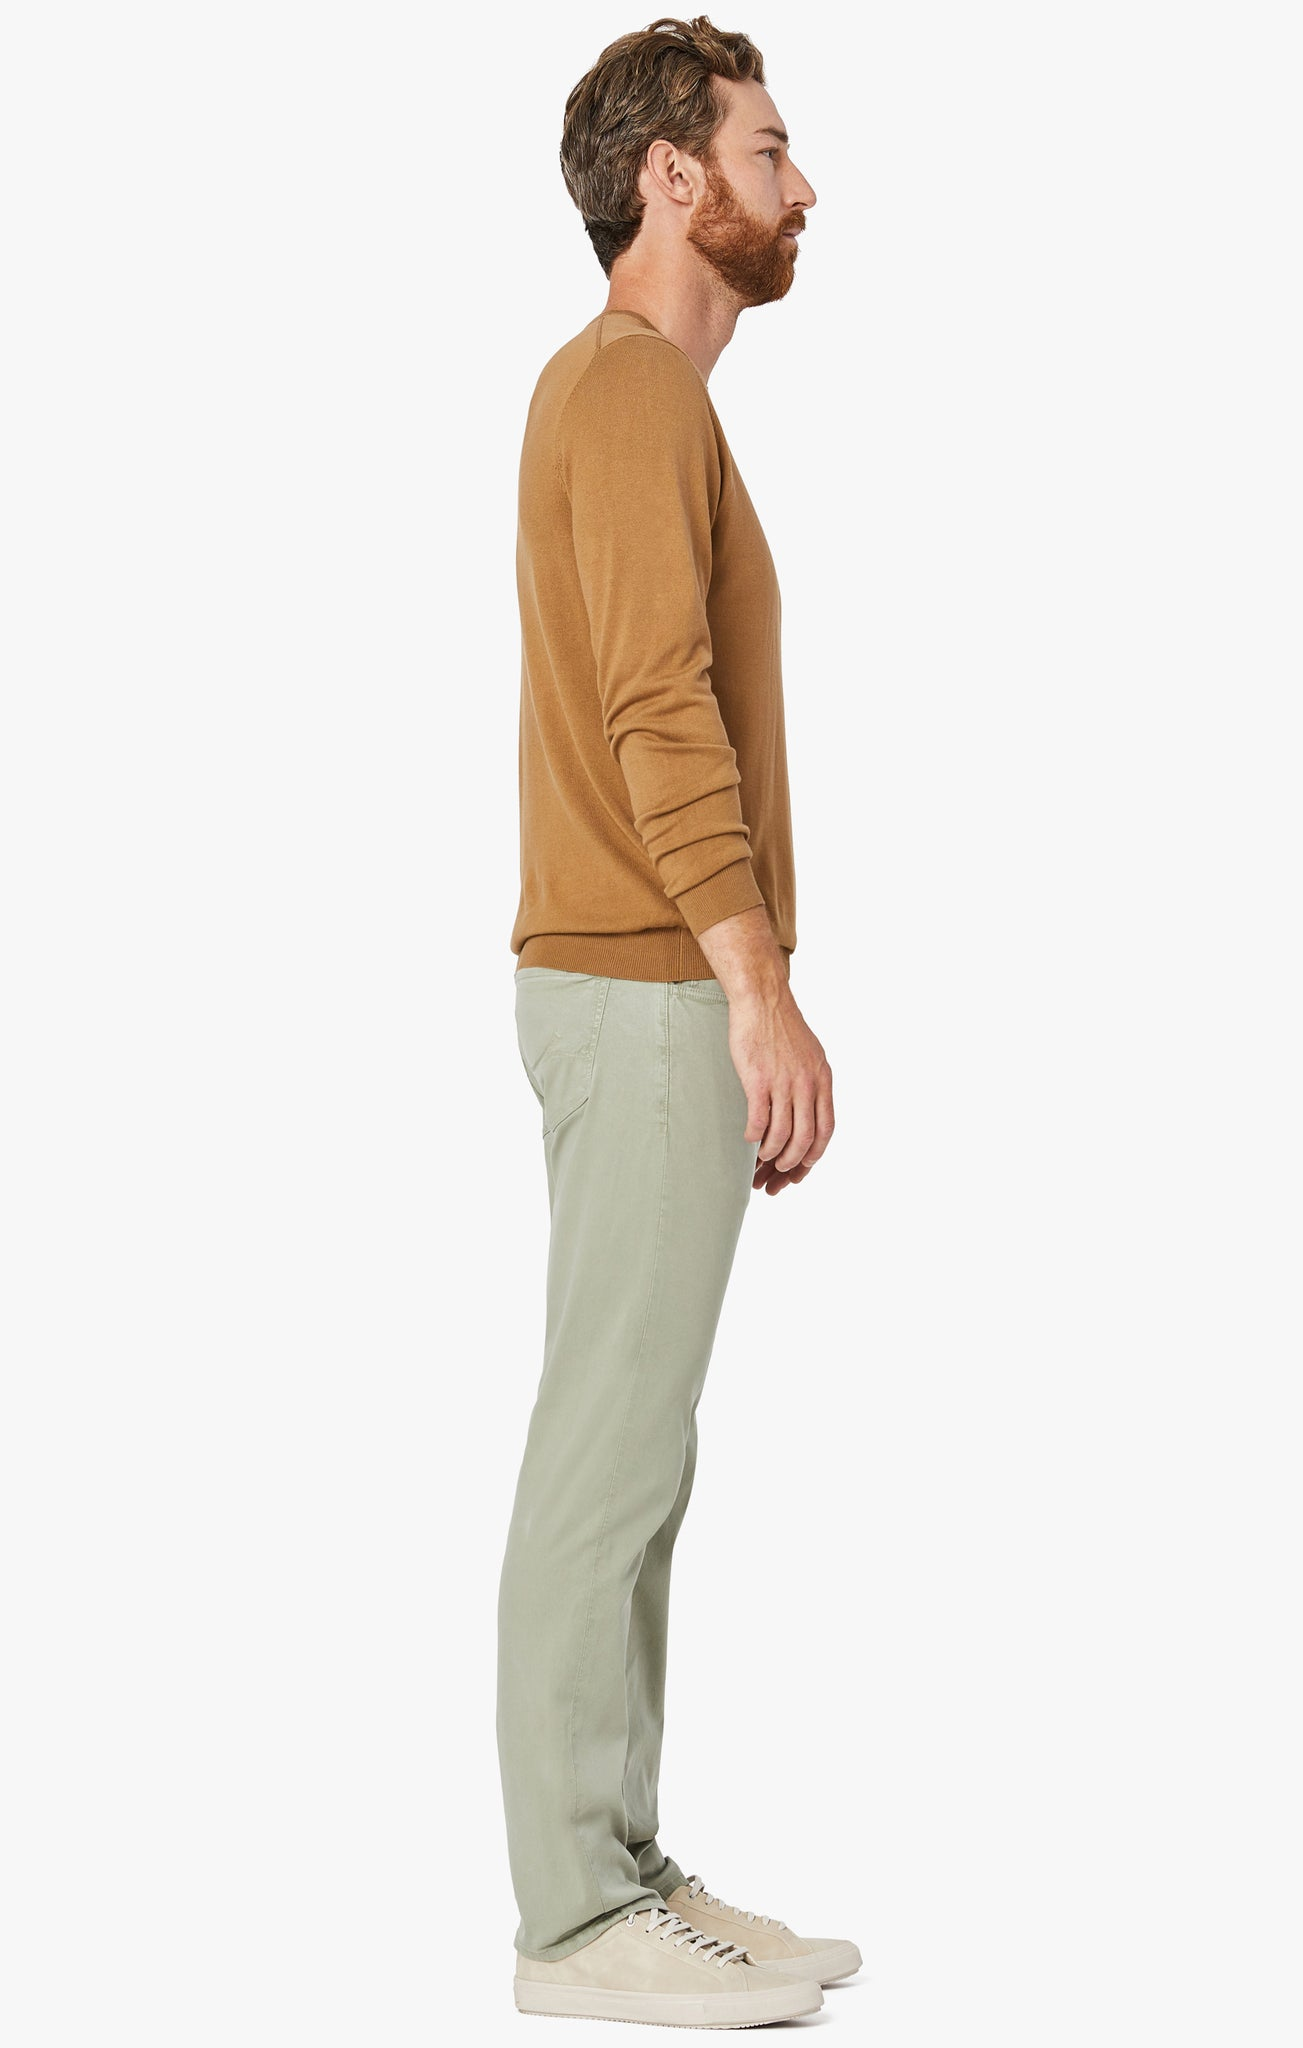 Courage Straight Leg Pants in Sage Soft Touch